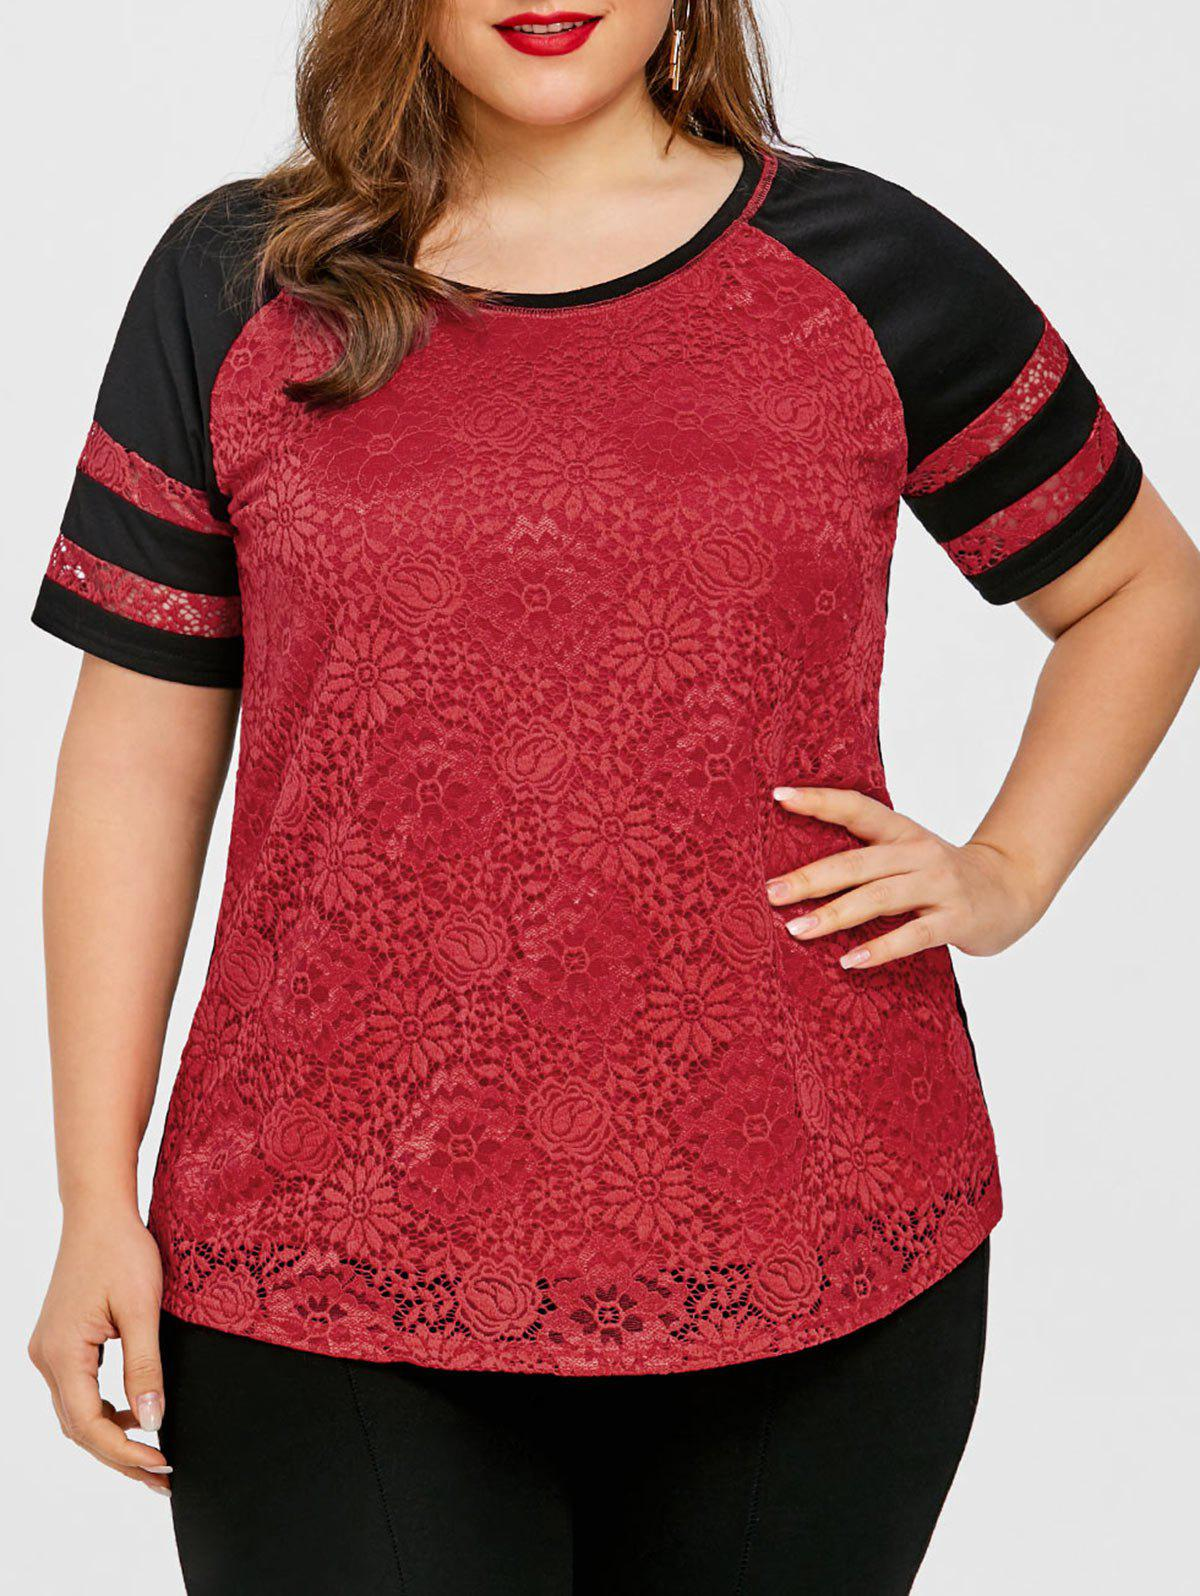 Plus Size Raglan Sleeve Lace Panel T-shirt stripe panel raglan sleeve t shirt